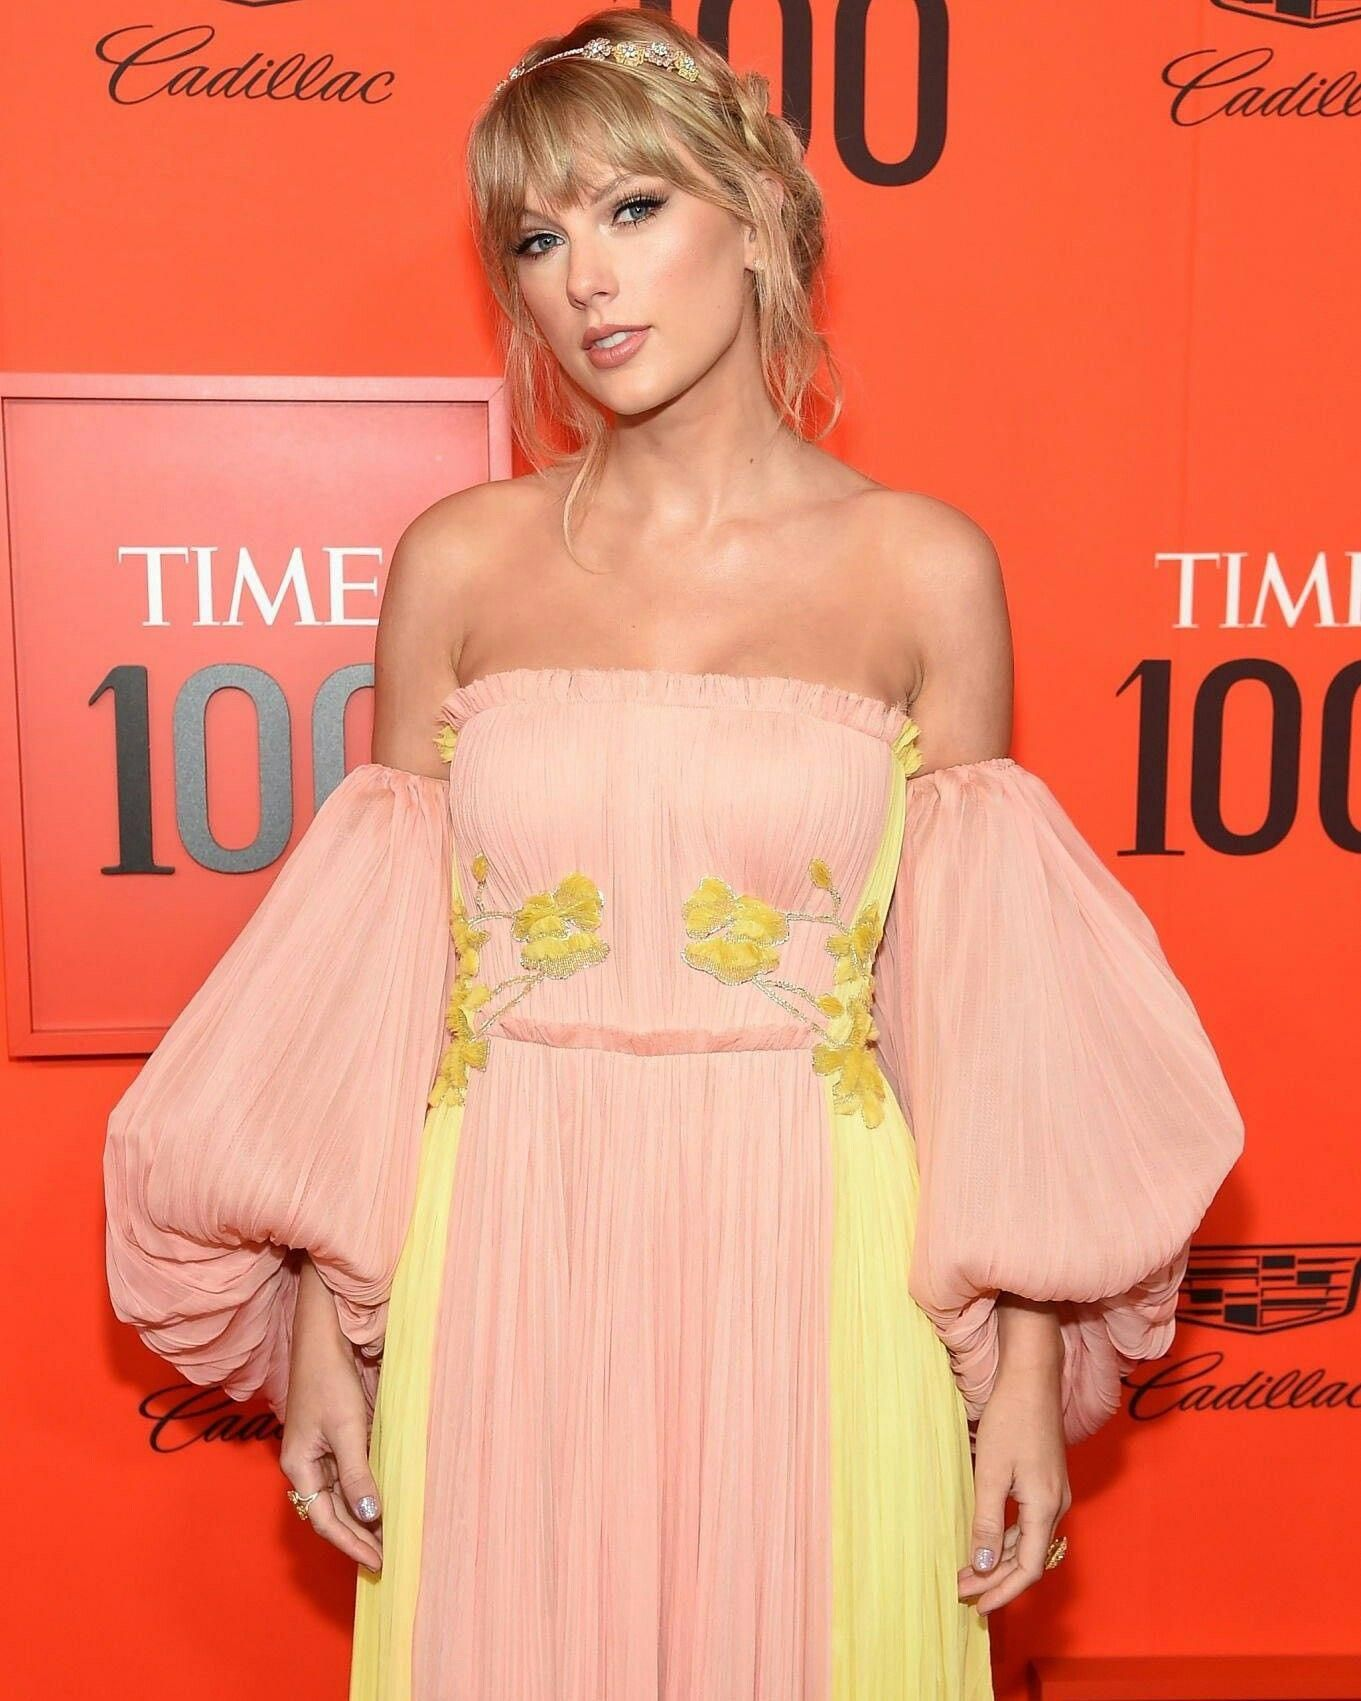 #whatalook   Taylor swift dress, Taylor swift party ...